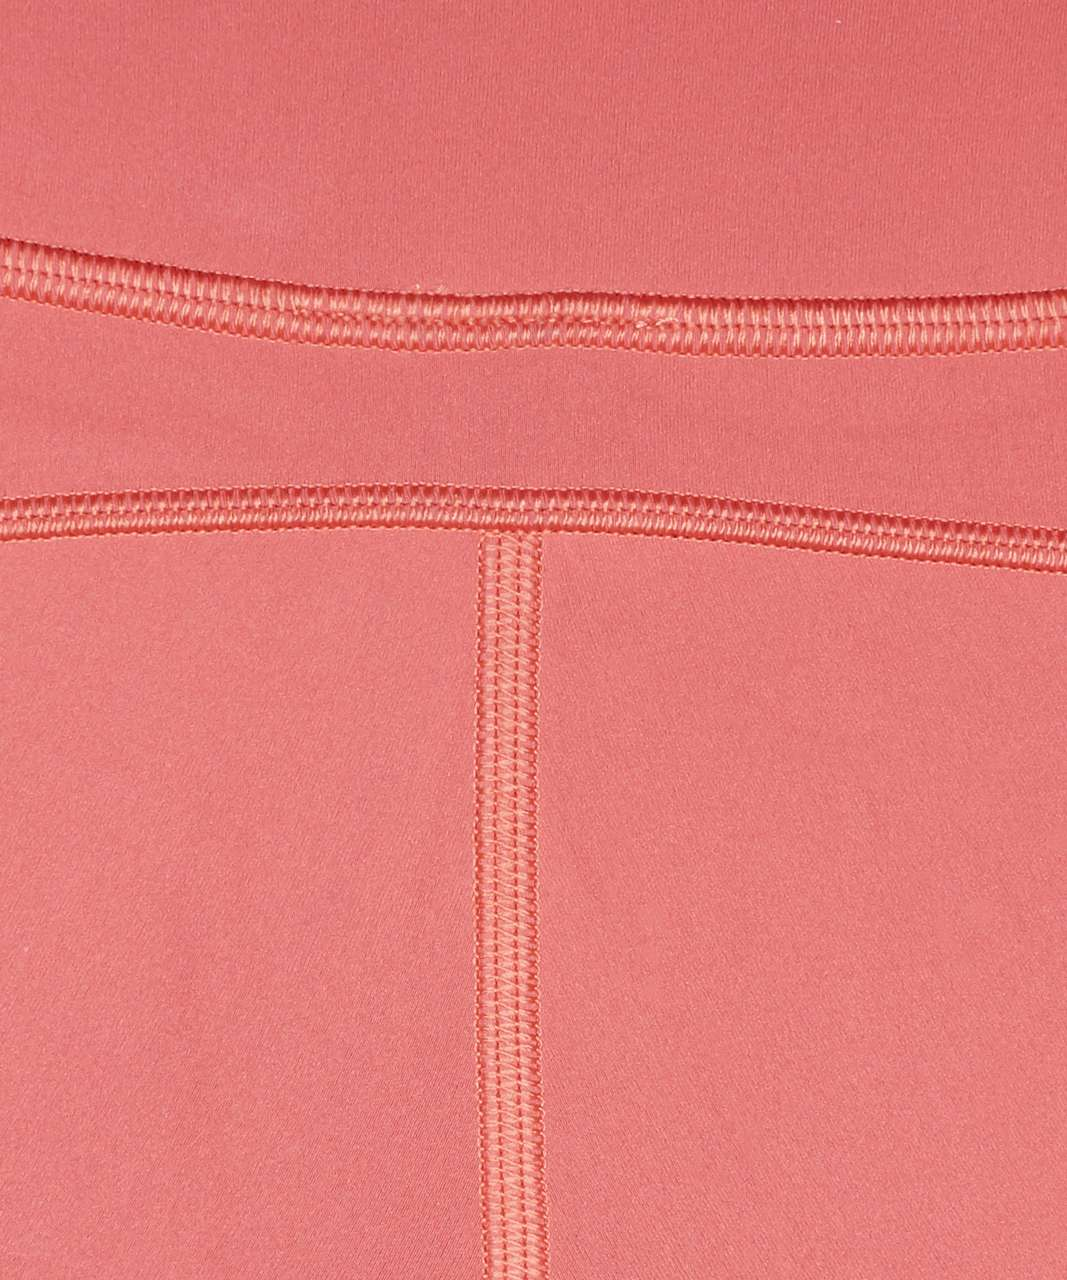 """Lululemon In Movement Tight 25"""" *Everlux - Rustic Coral"""